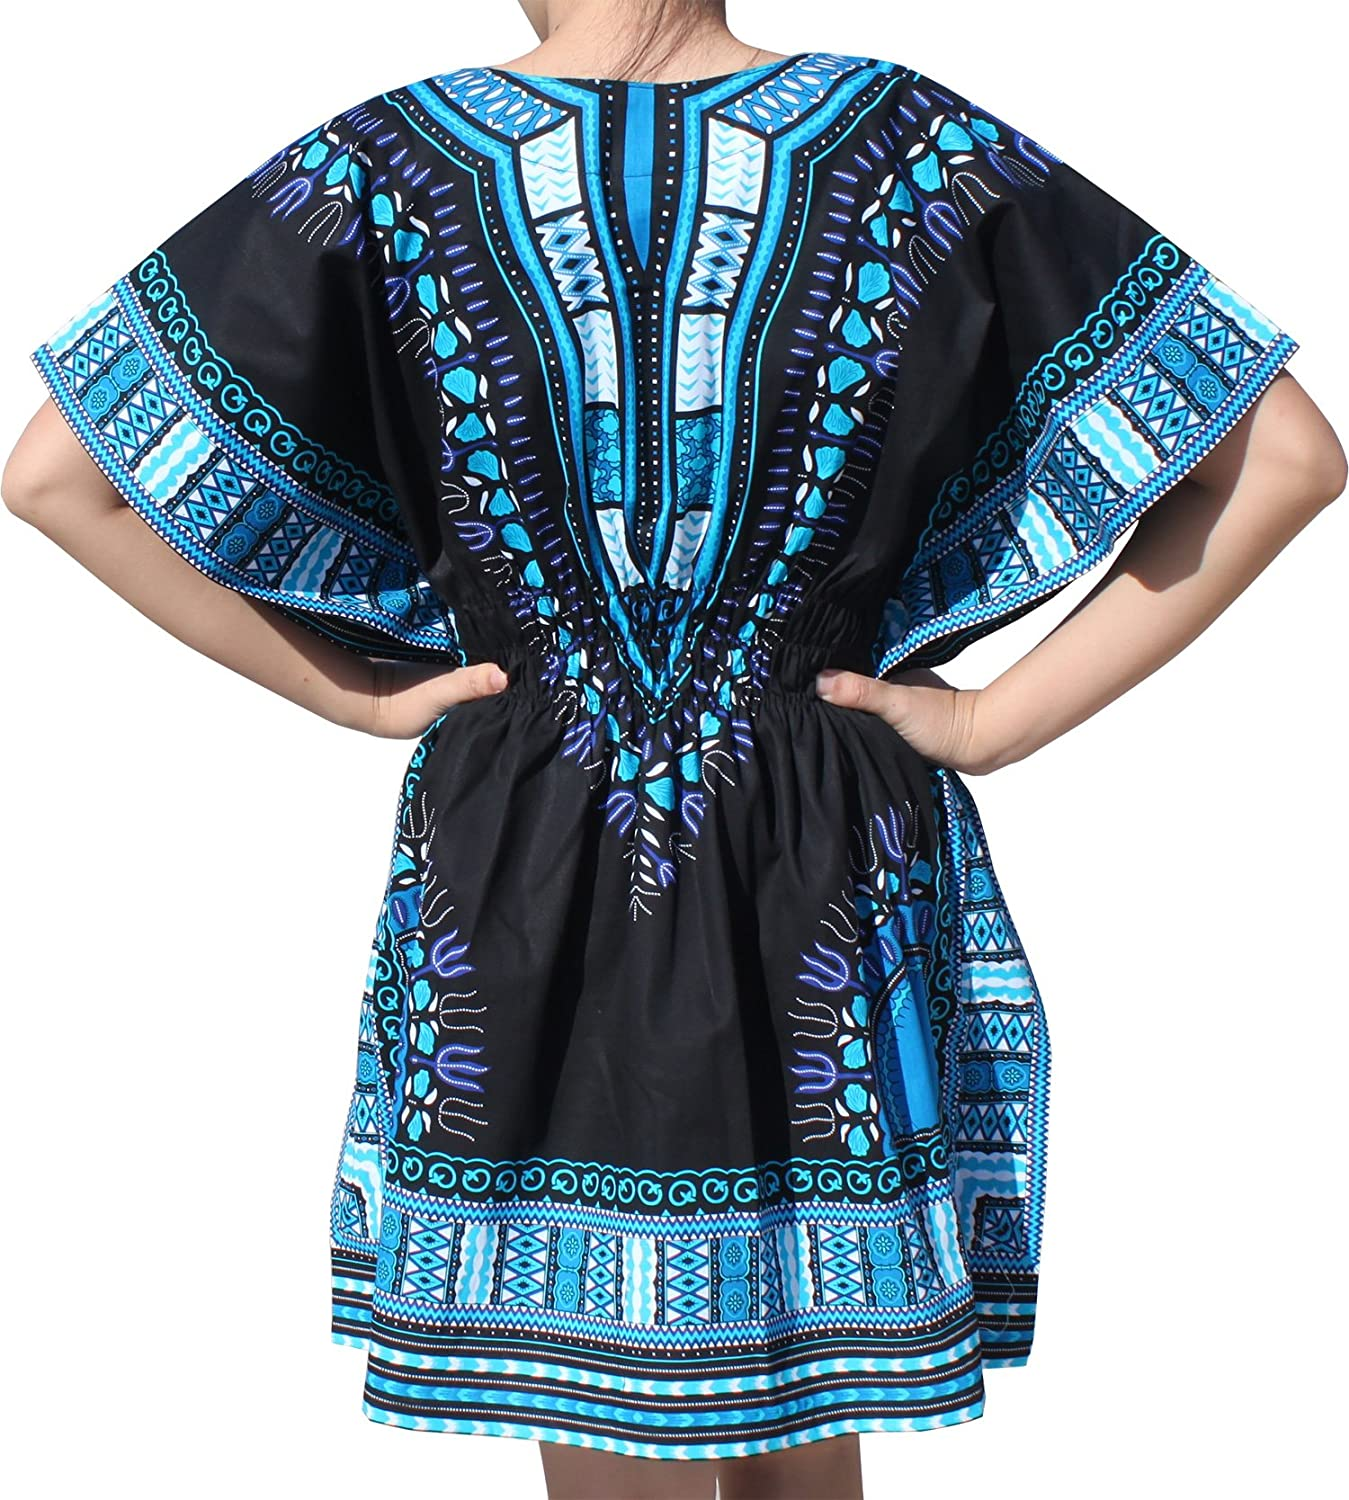 RaanPahMuang Ladies Black Dashiki Shirt Elastic Pull In Waist VCollar, Medium, Sky bluee